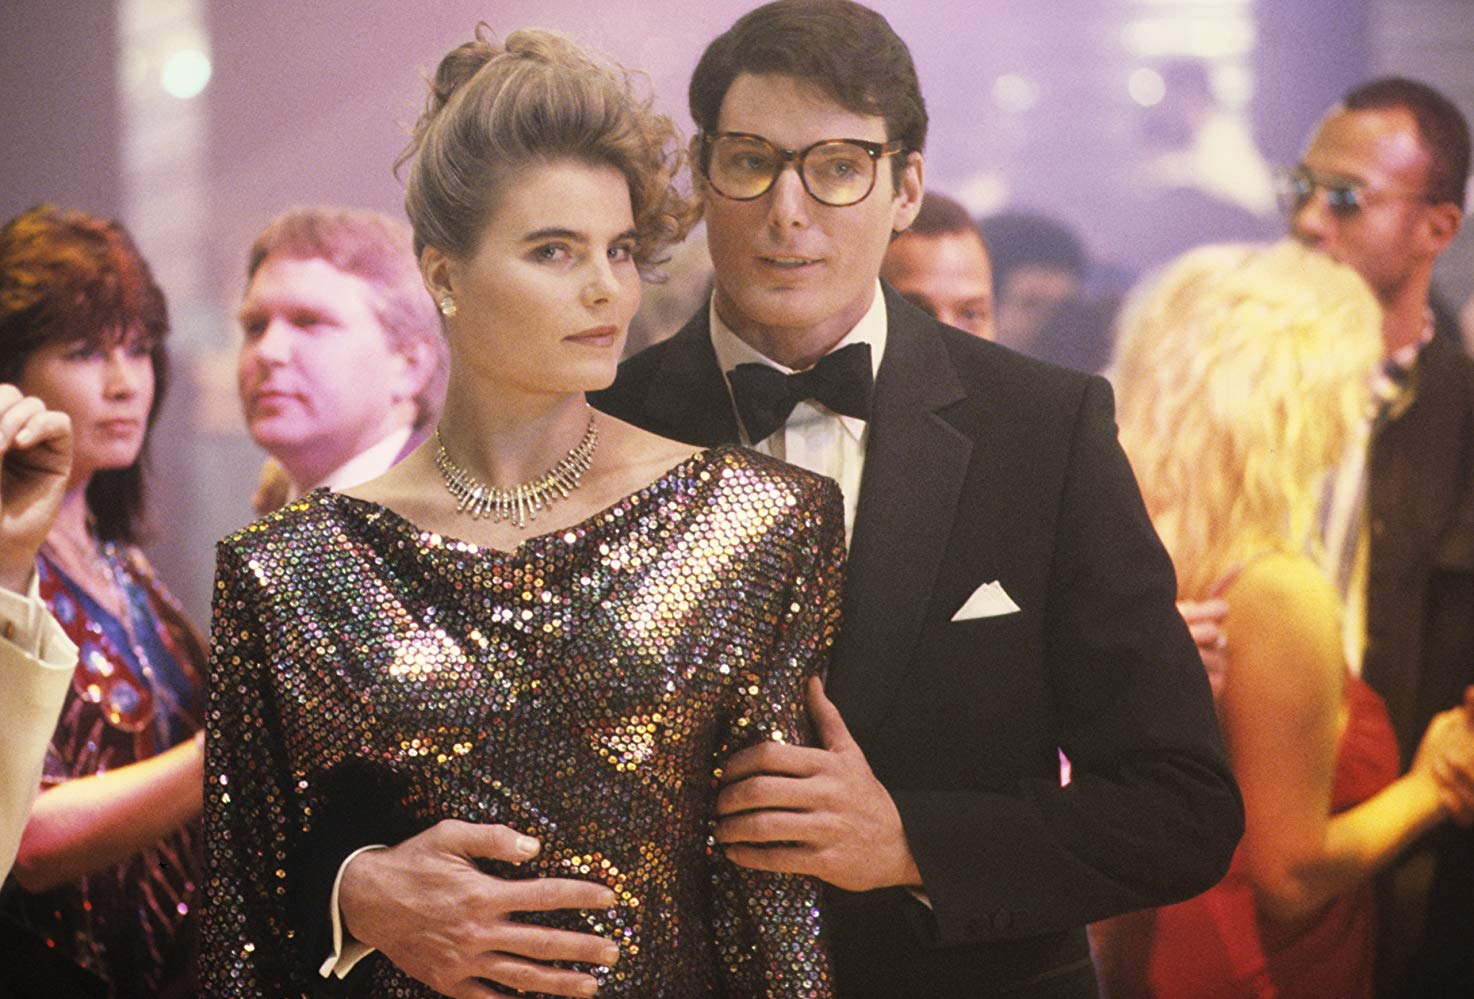 Clark Kent (Christopher Reeve) with new love interest Lacy Warfield (Mariel Hemingway) in Superman IV The Quest for Peace (1987)